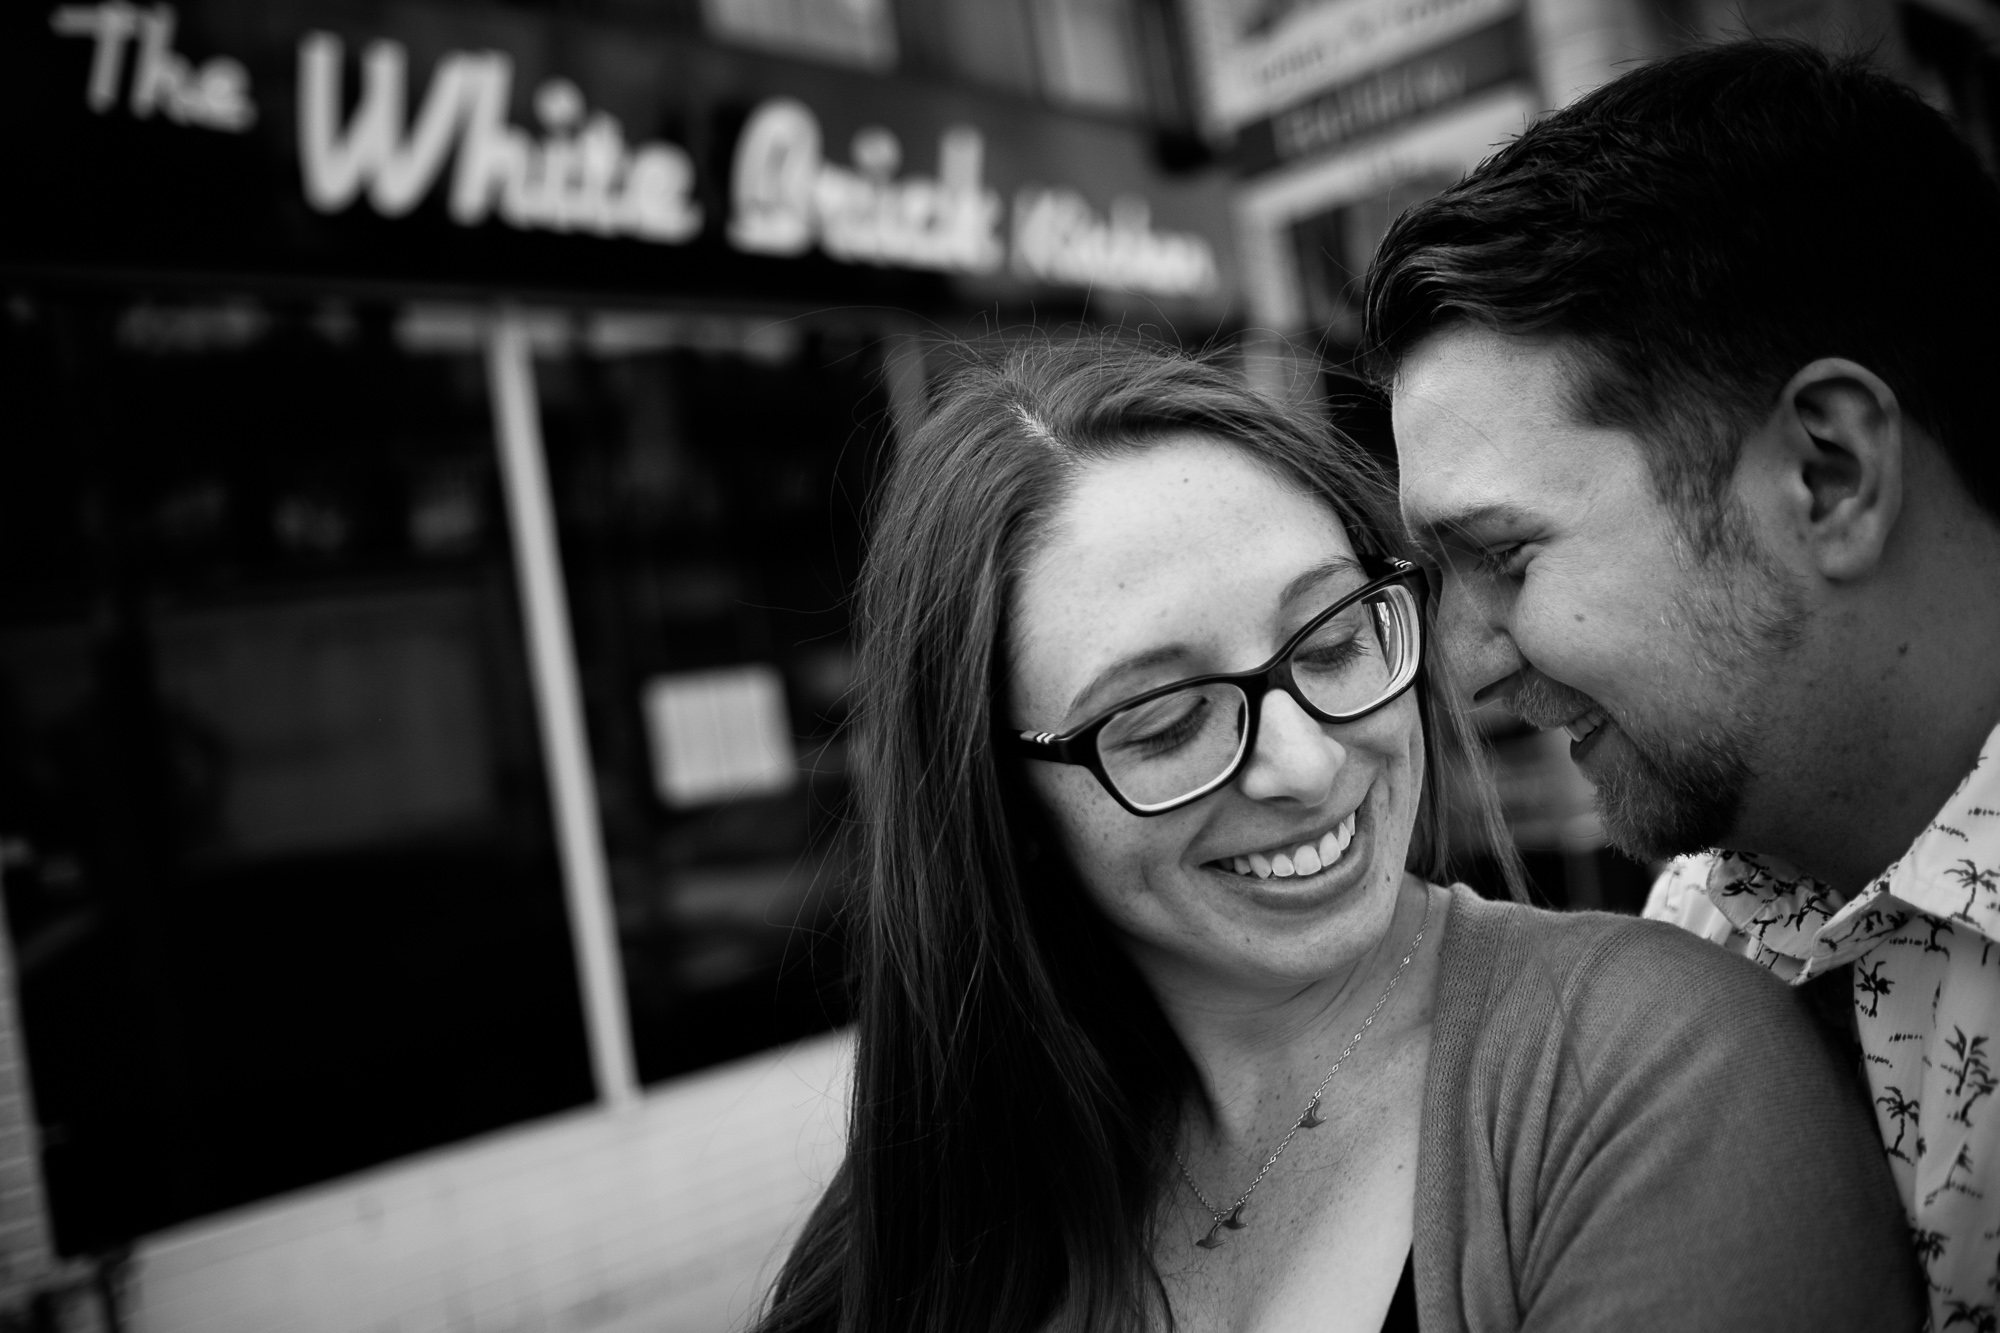 Haley and Stephen pose for an engagement portrait during their engagement session at the restaurant they own in Downtown Toronto.